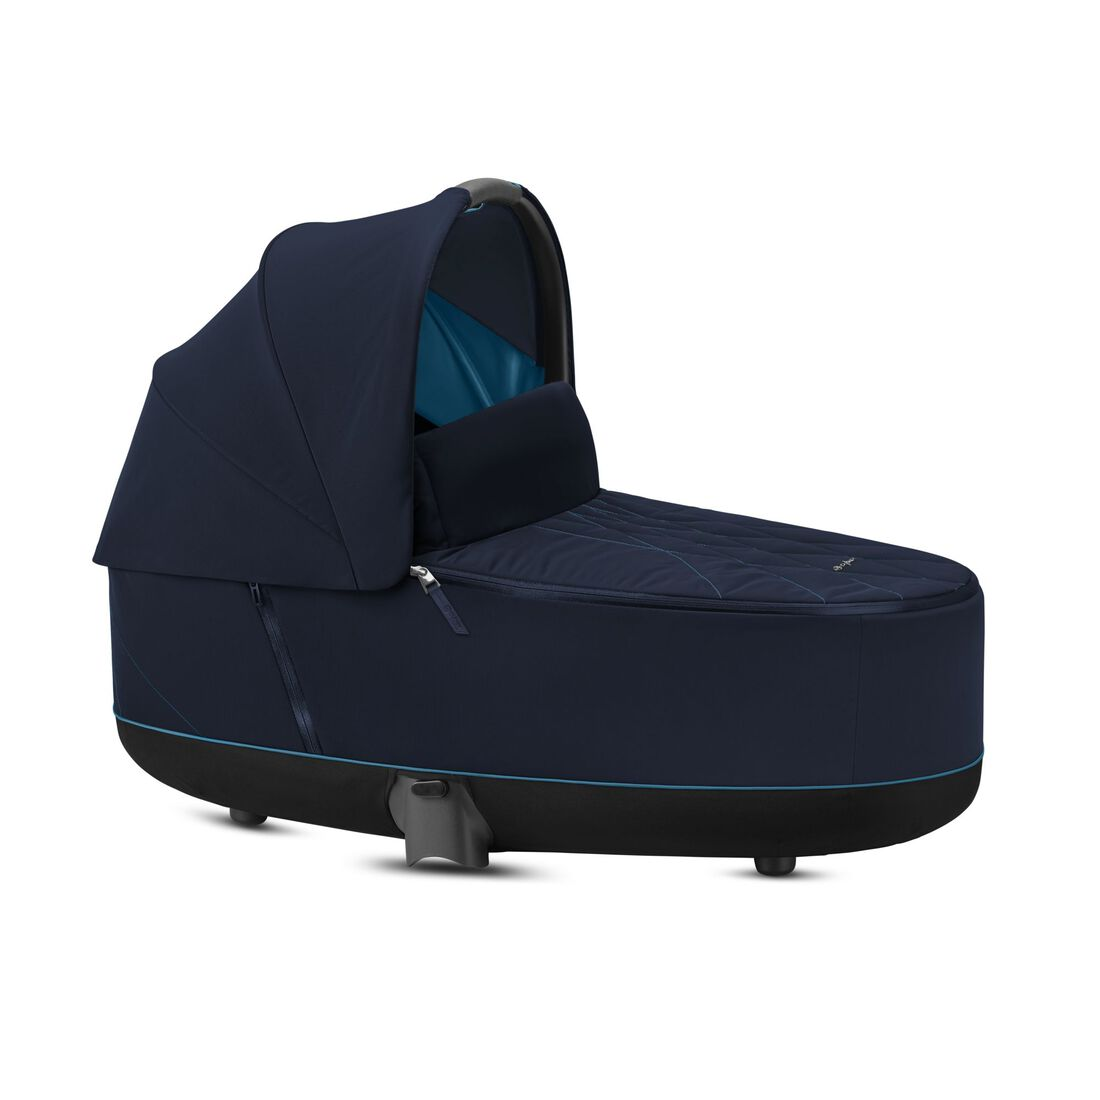 CYBEX Priam Lux Carry Cot - Nautical Blue in Nautical Blue large image number 1